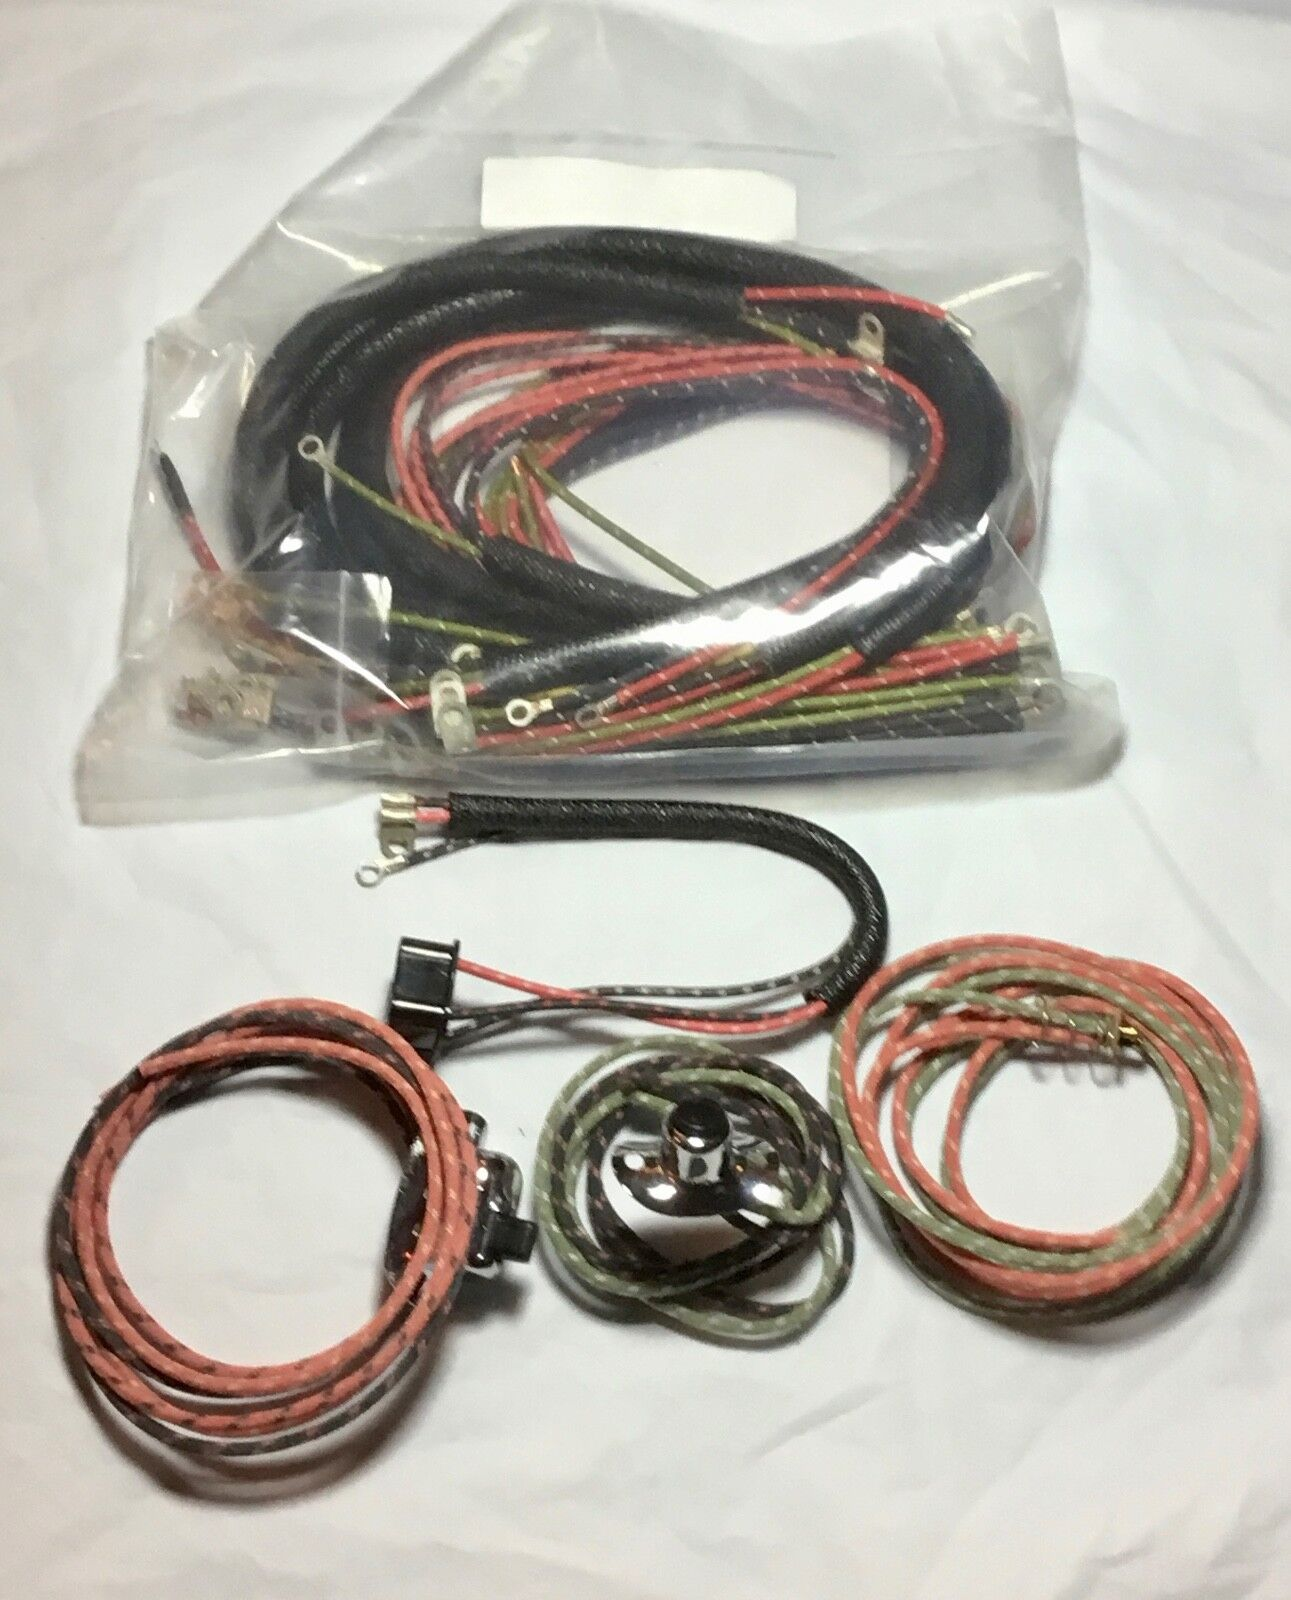 Wiring Harness Job Description